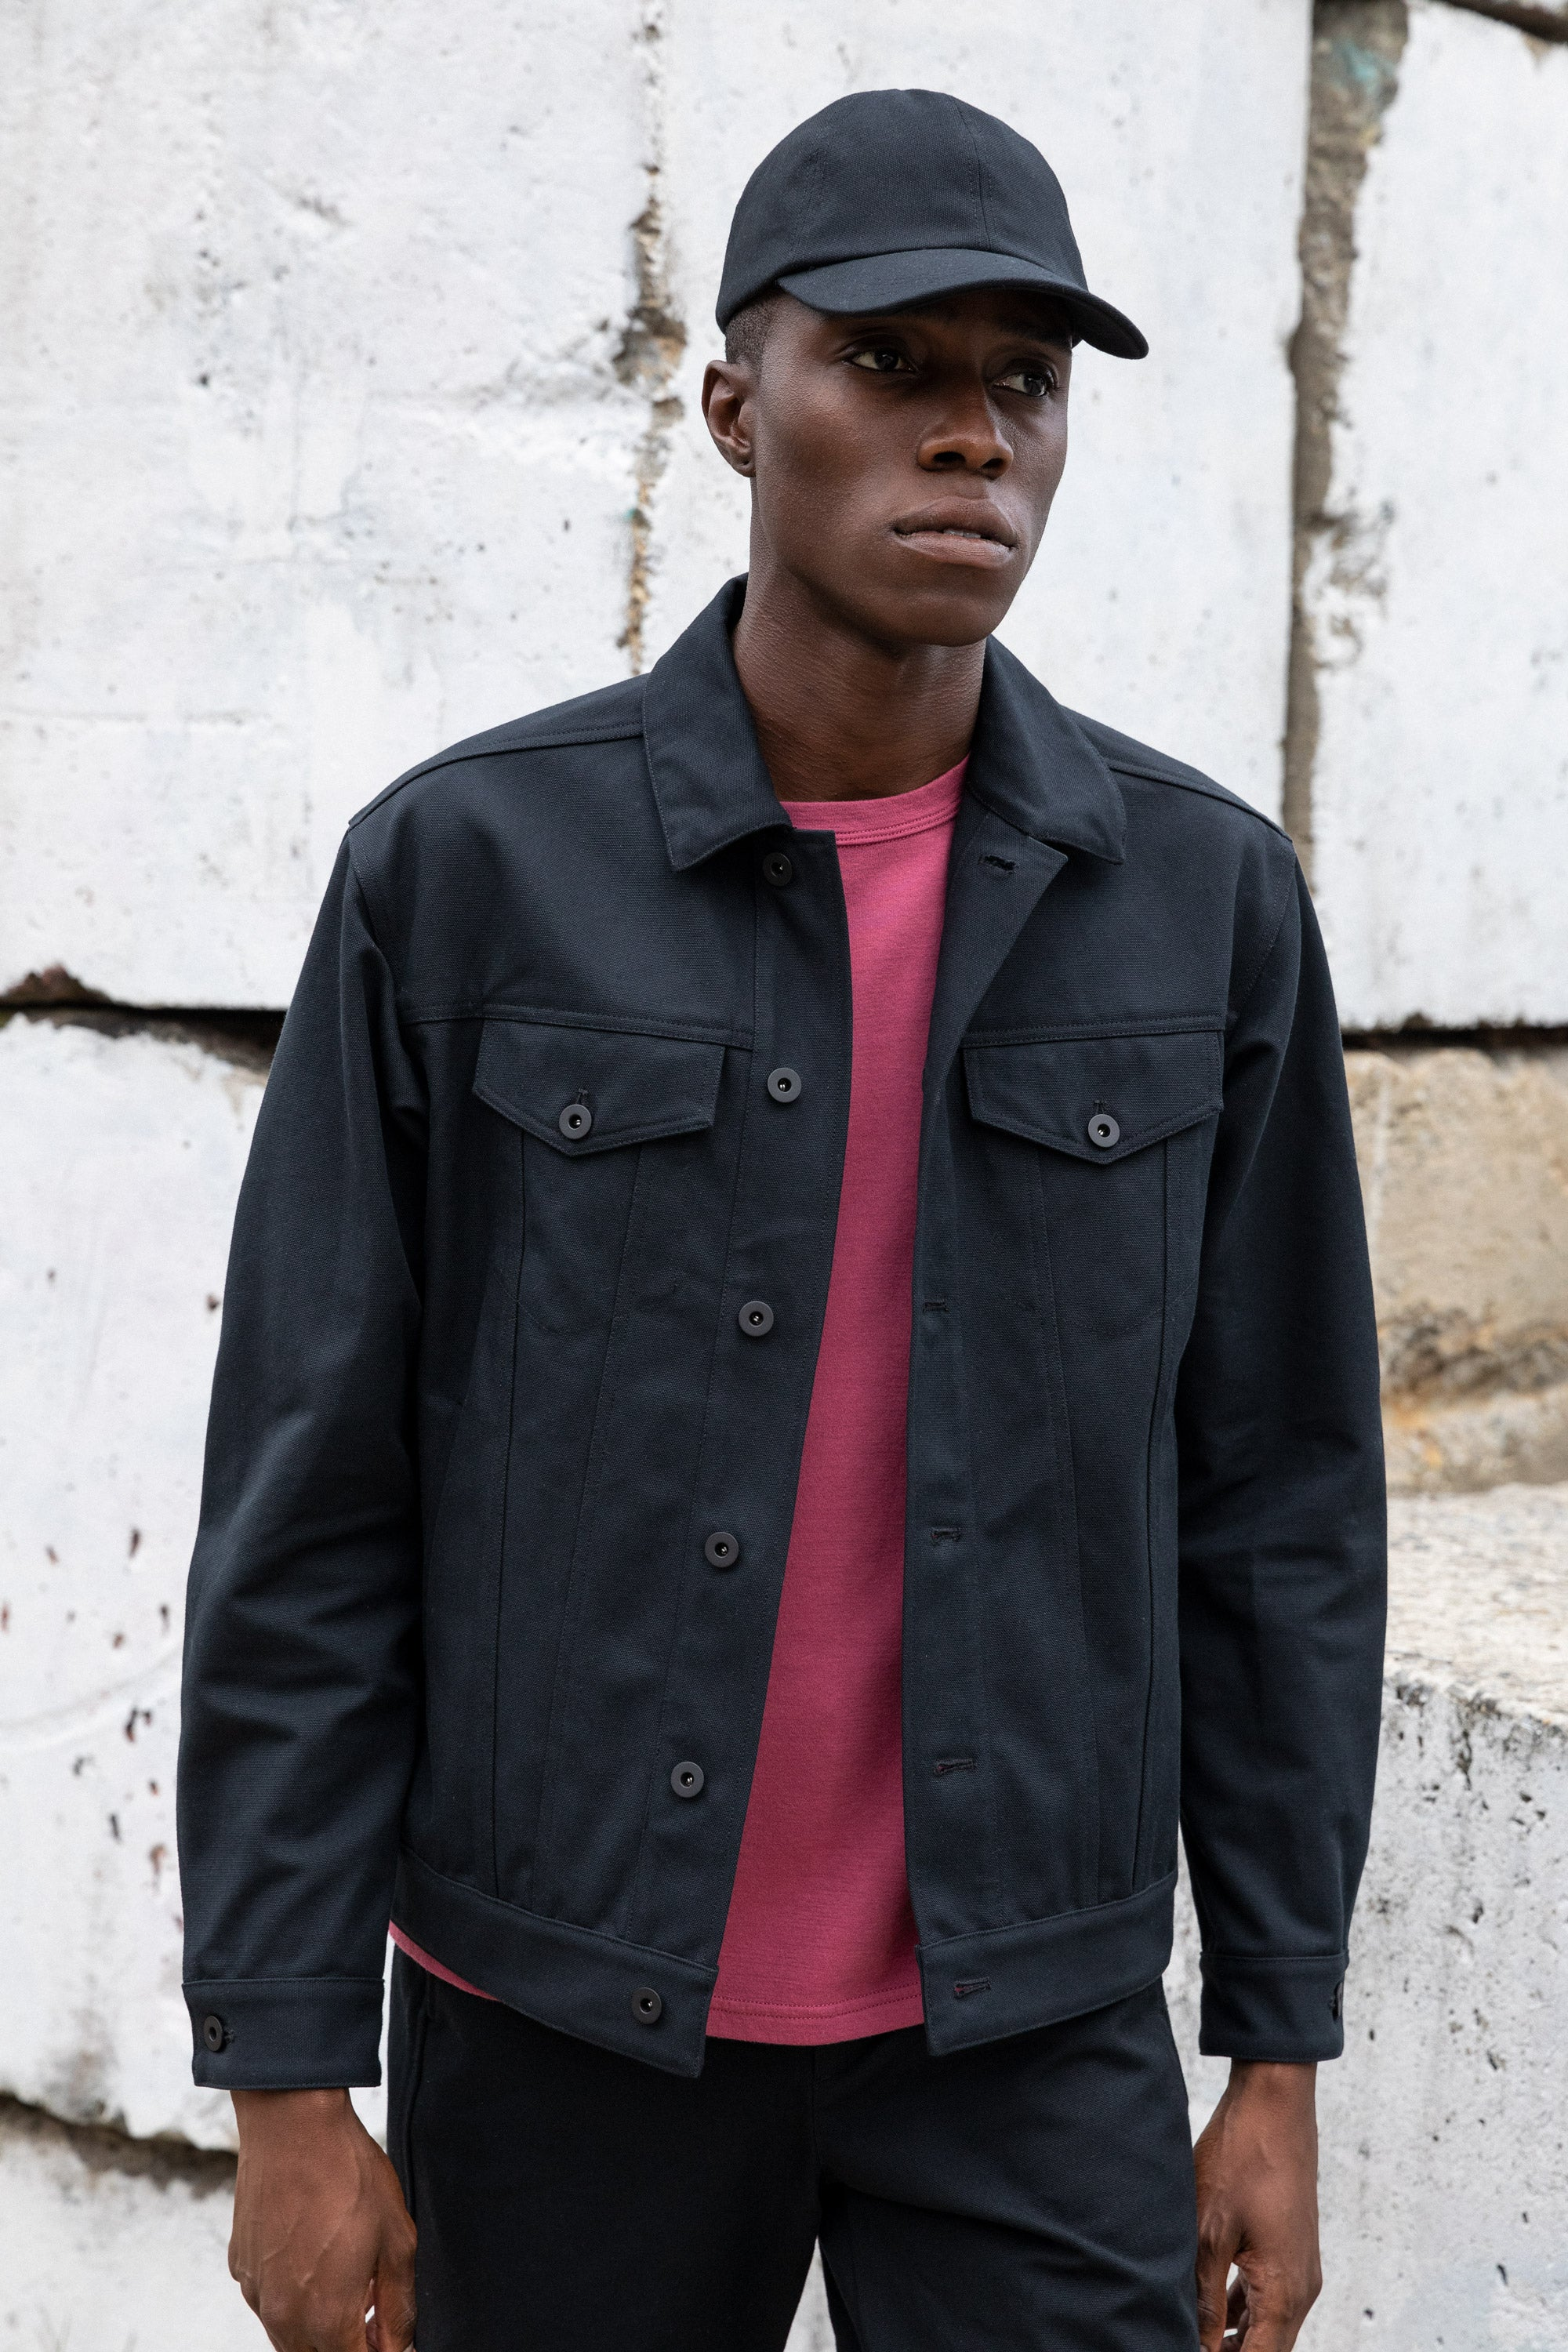 Edem wearing the  Experiment 249 - Duckcloth Shank Jacket in Black along with the Cottonweight Cut Two T-Shirt in GD Dry Rose and the Duckcap in Black